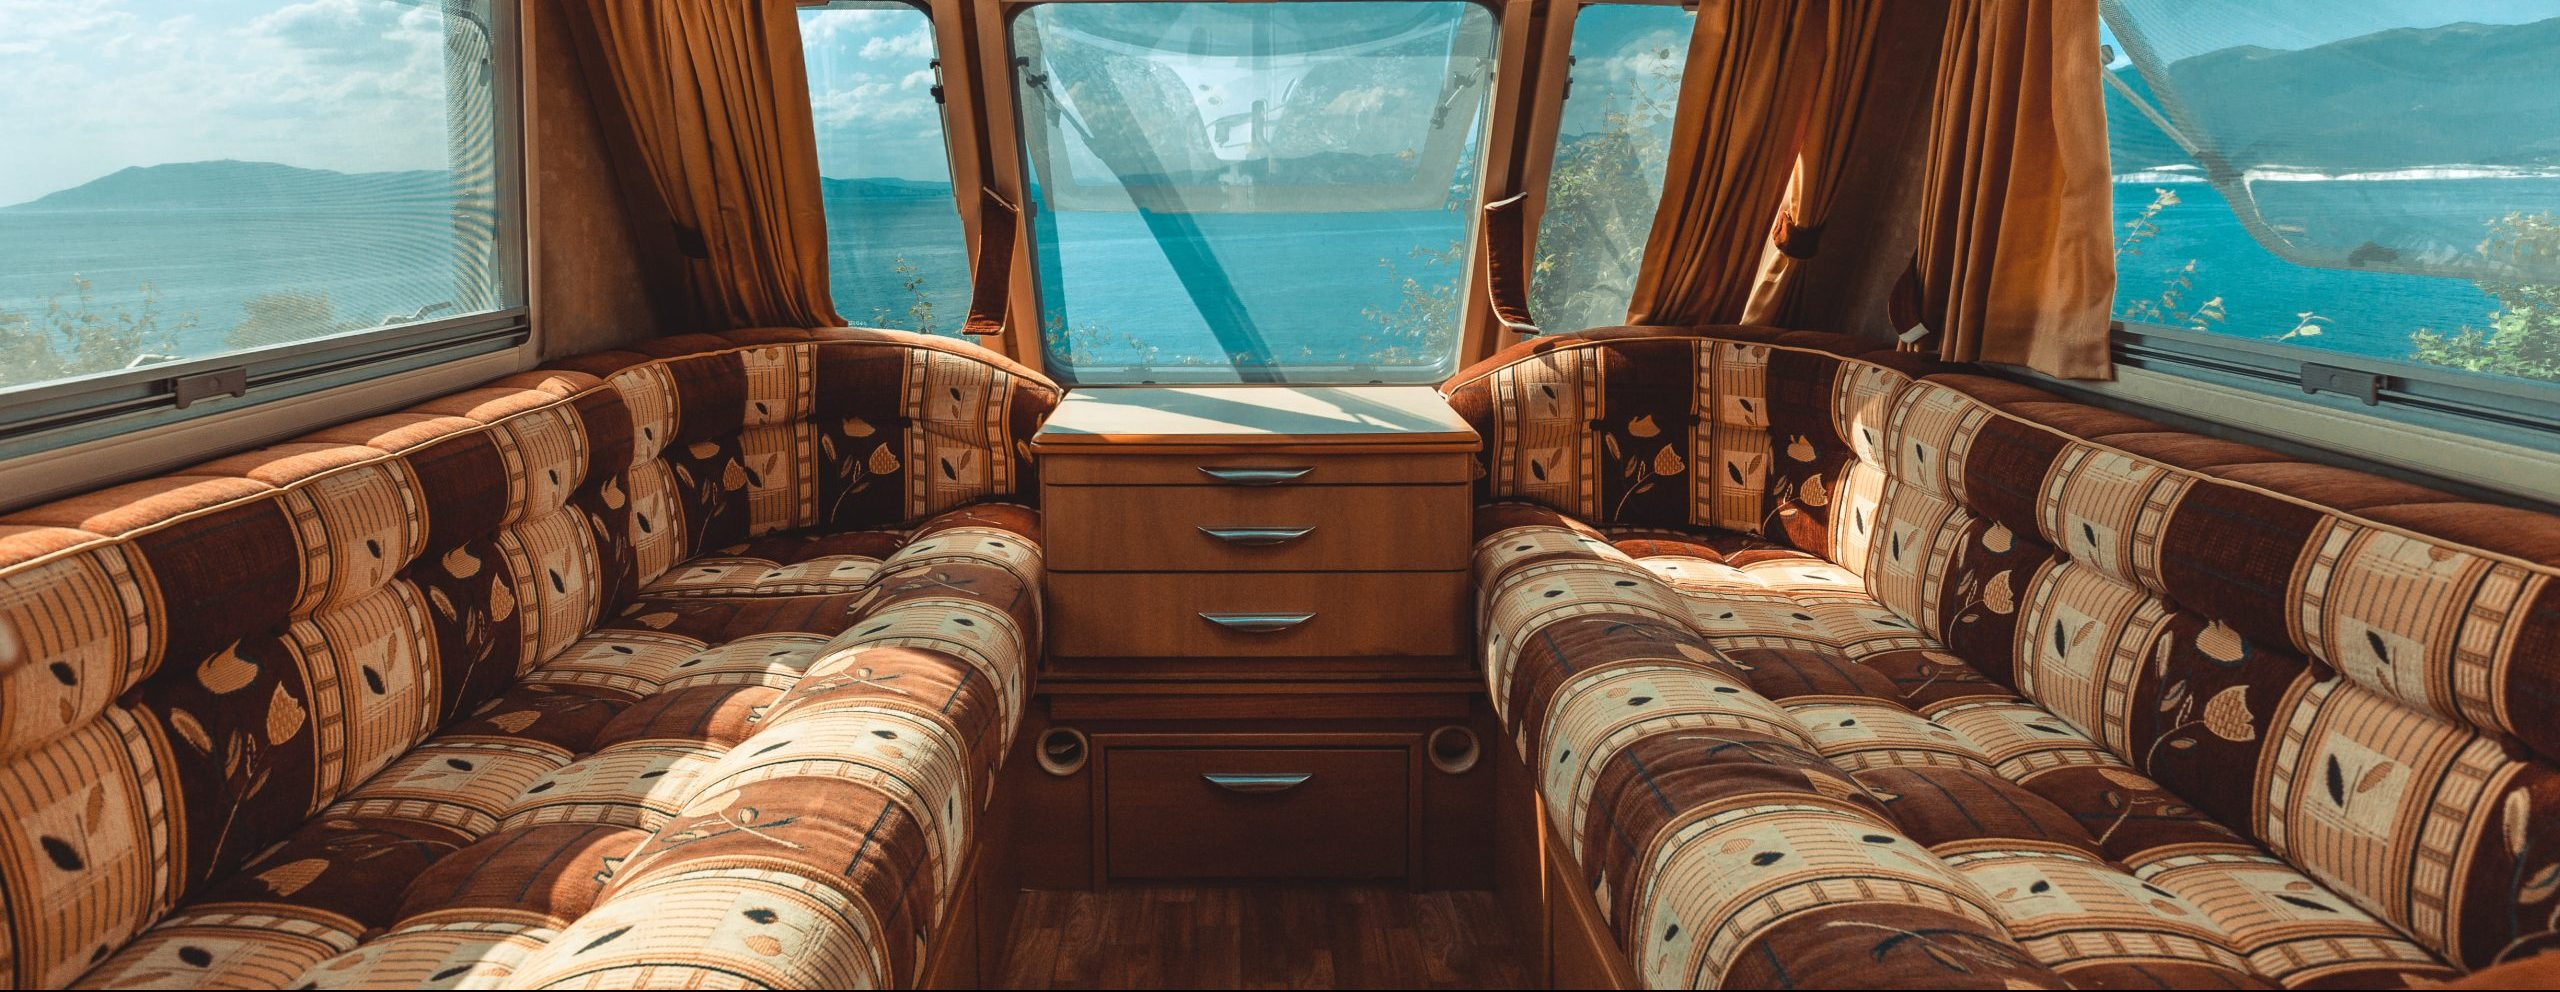 Replace Your RV Furniture